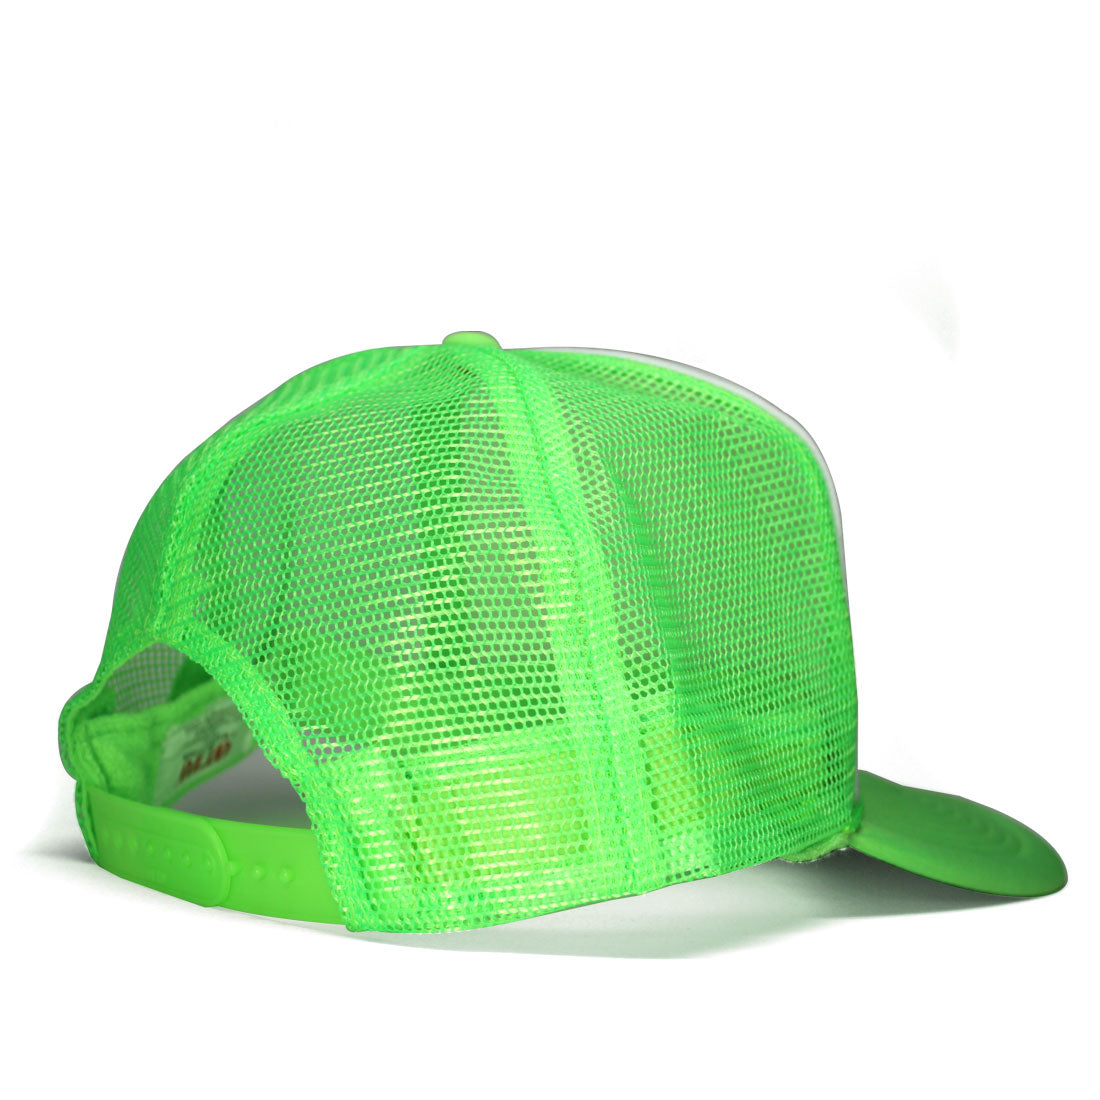 Skullcano Curved Bill Trucker Hat in Neon Green/White